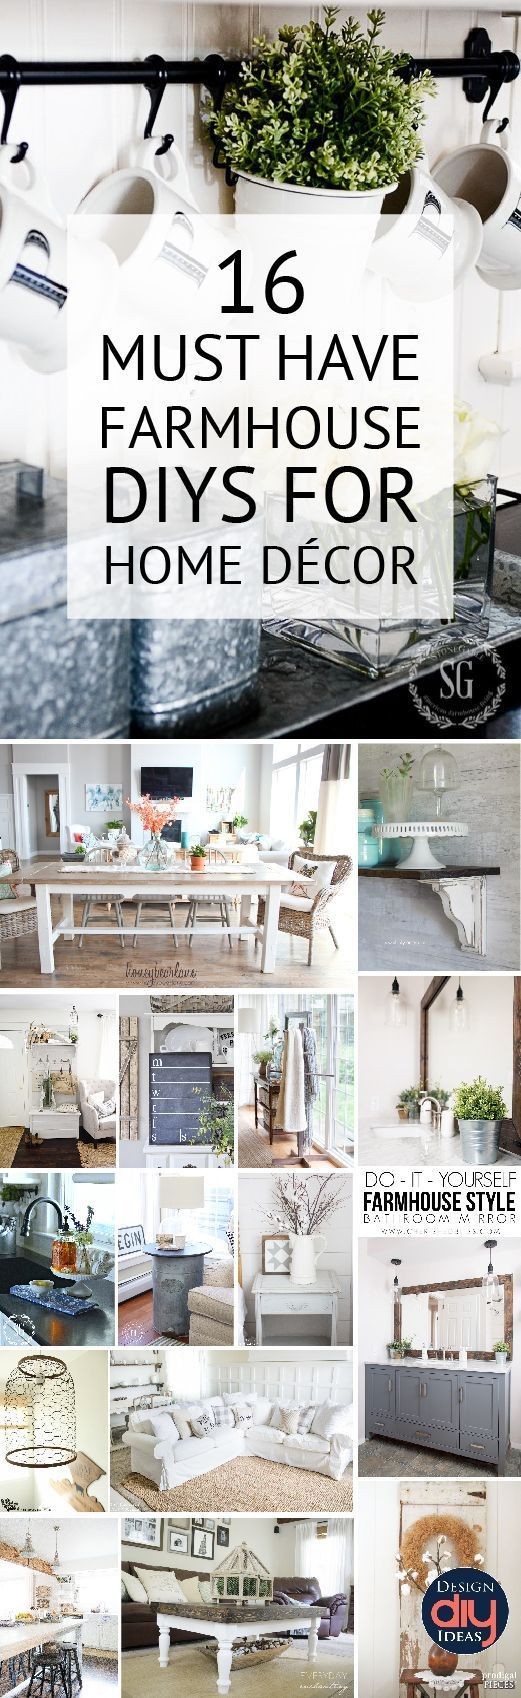 522 best images about farmhouse ideas & decor on pinterest